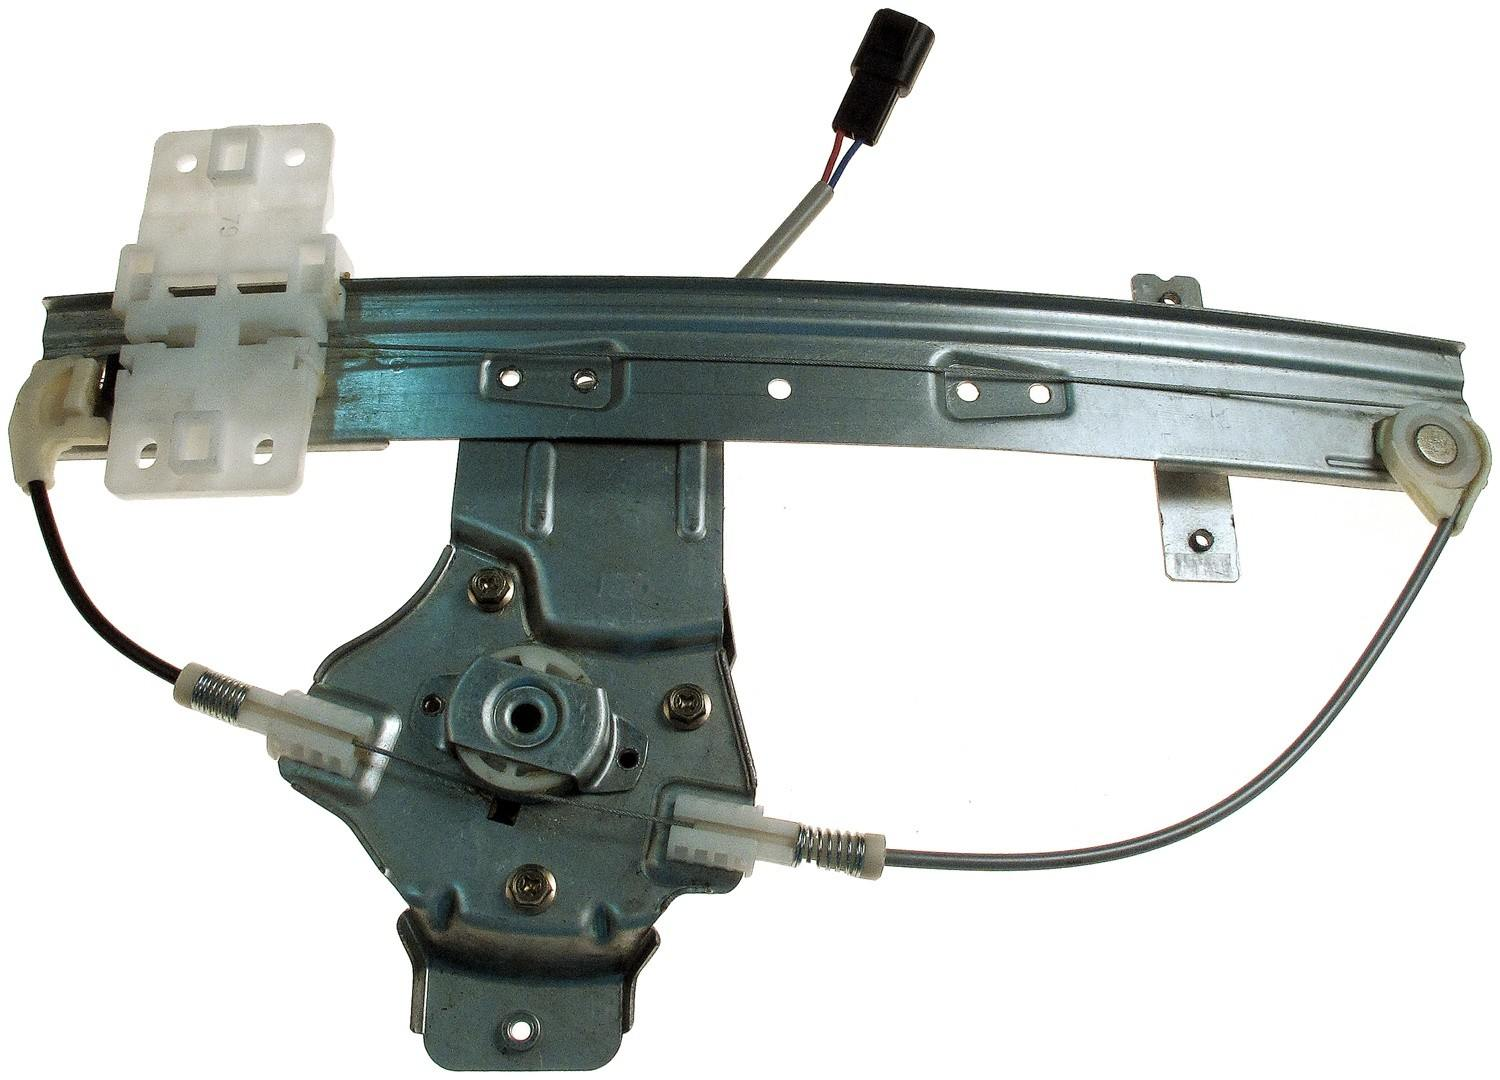 Acdelco Gm Original Equipment Door Jamb Switch Part Number D6074 2004 Pontiac Grandam Power Window Motor And Regulator Assembly Rear Dorman Oe Solutions Right